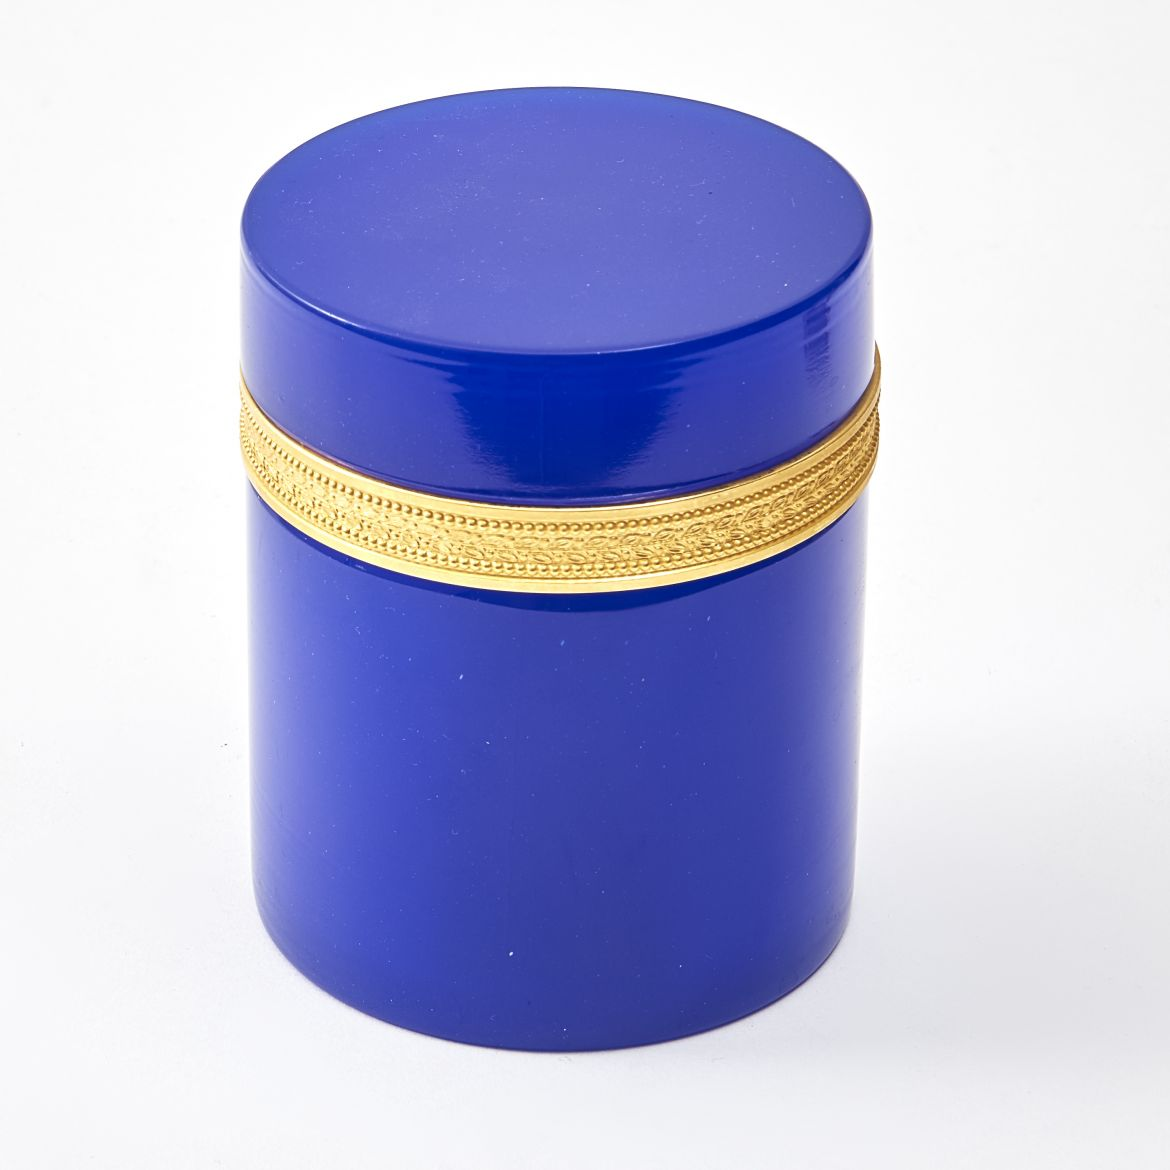 Murano Cylindrical Blue Glass Box